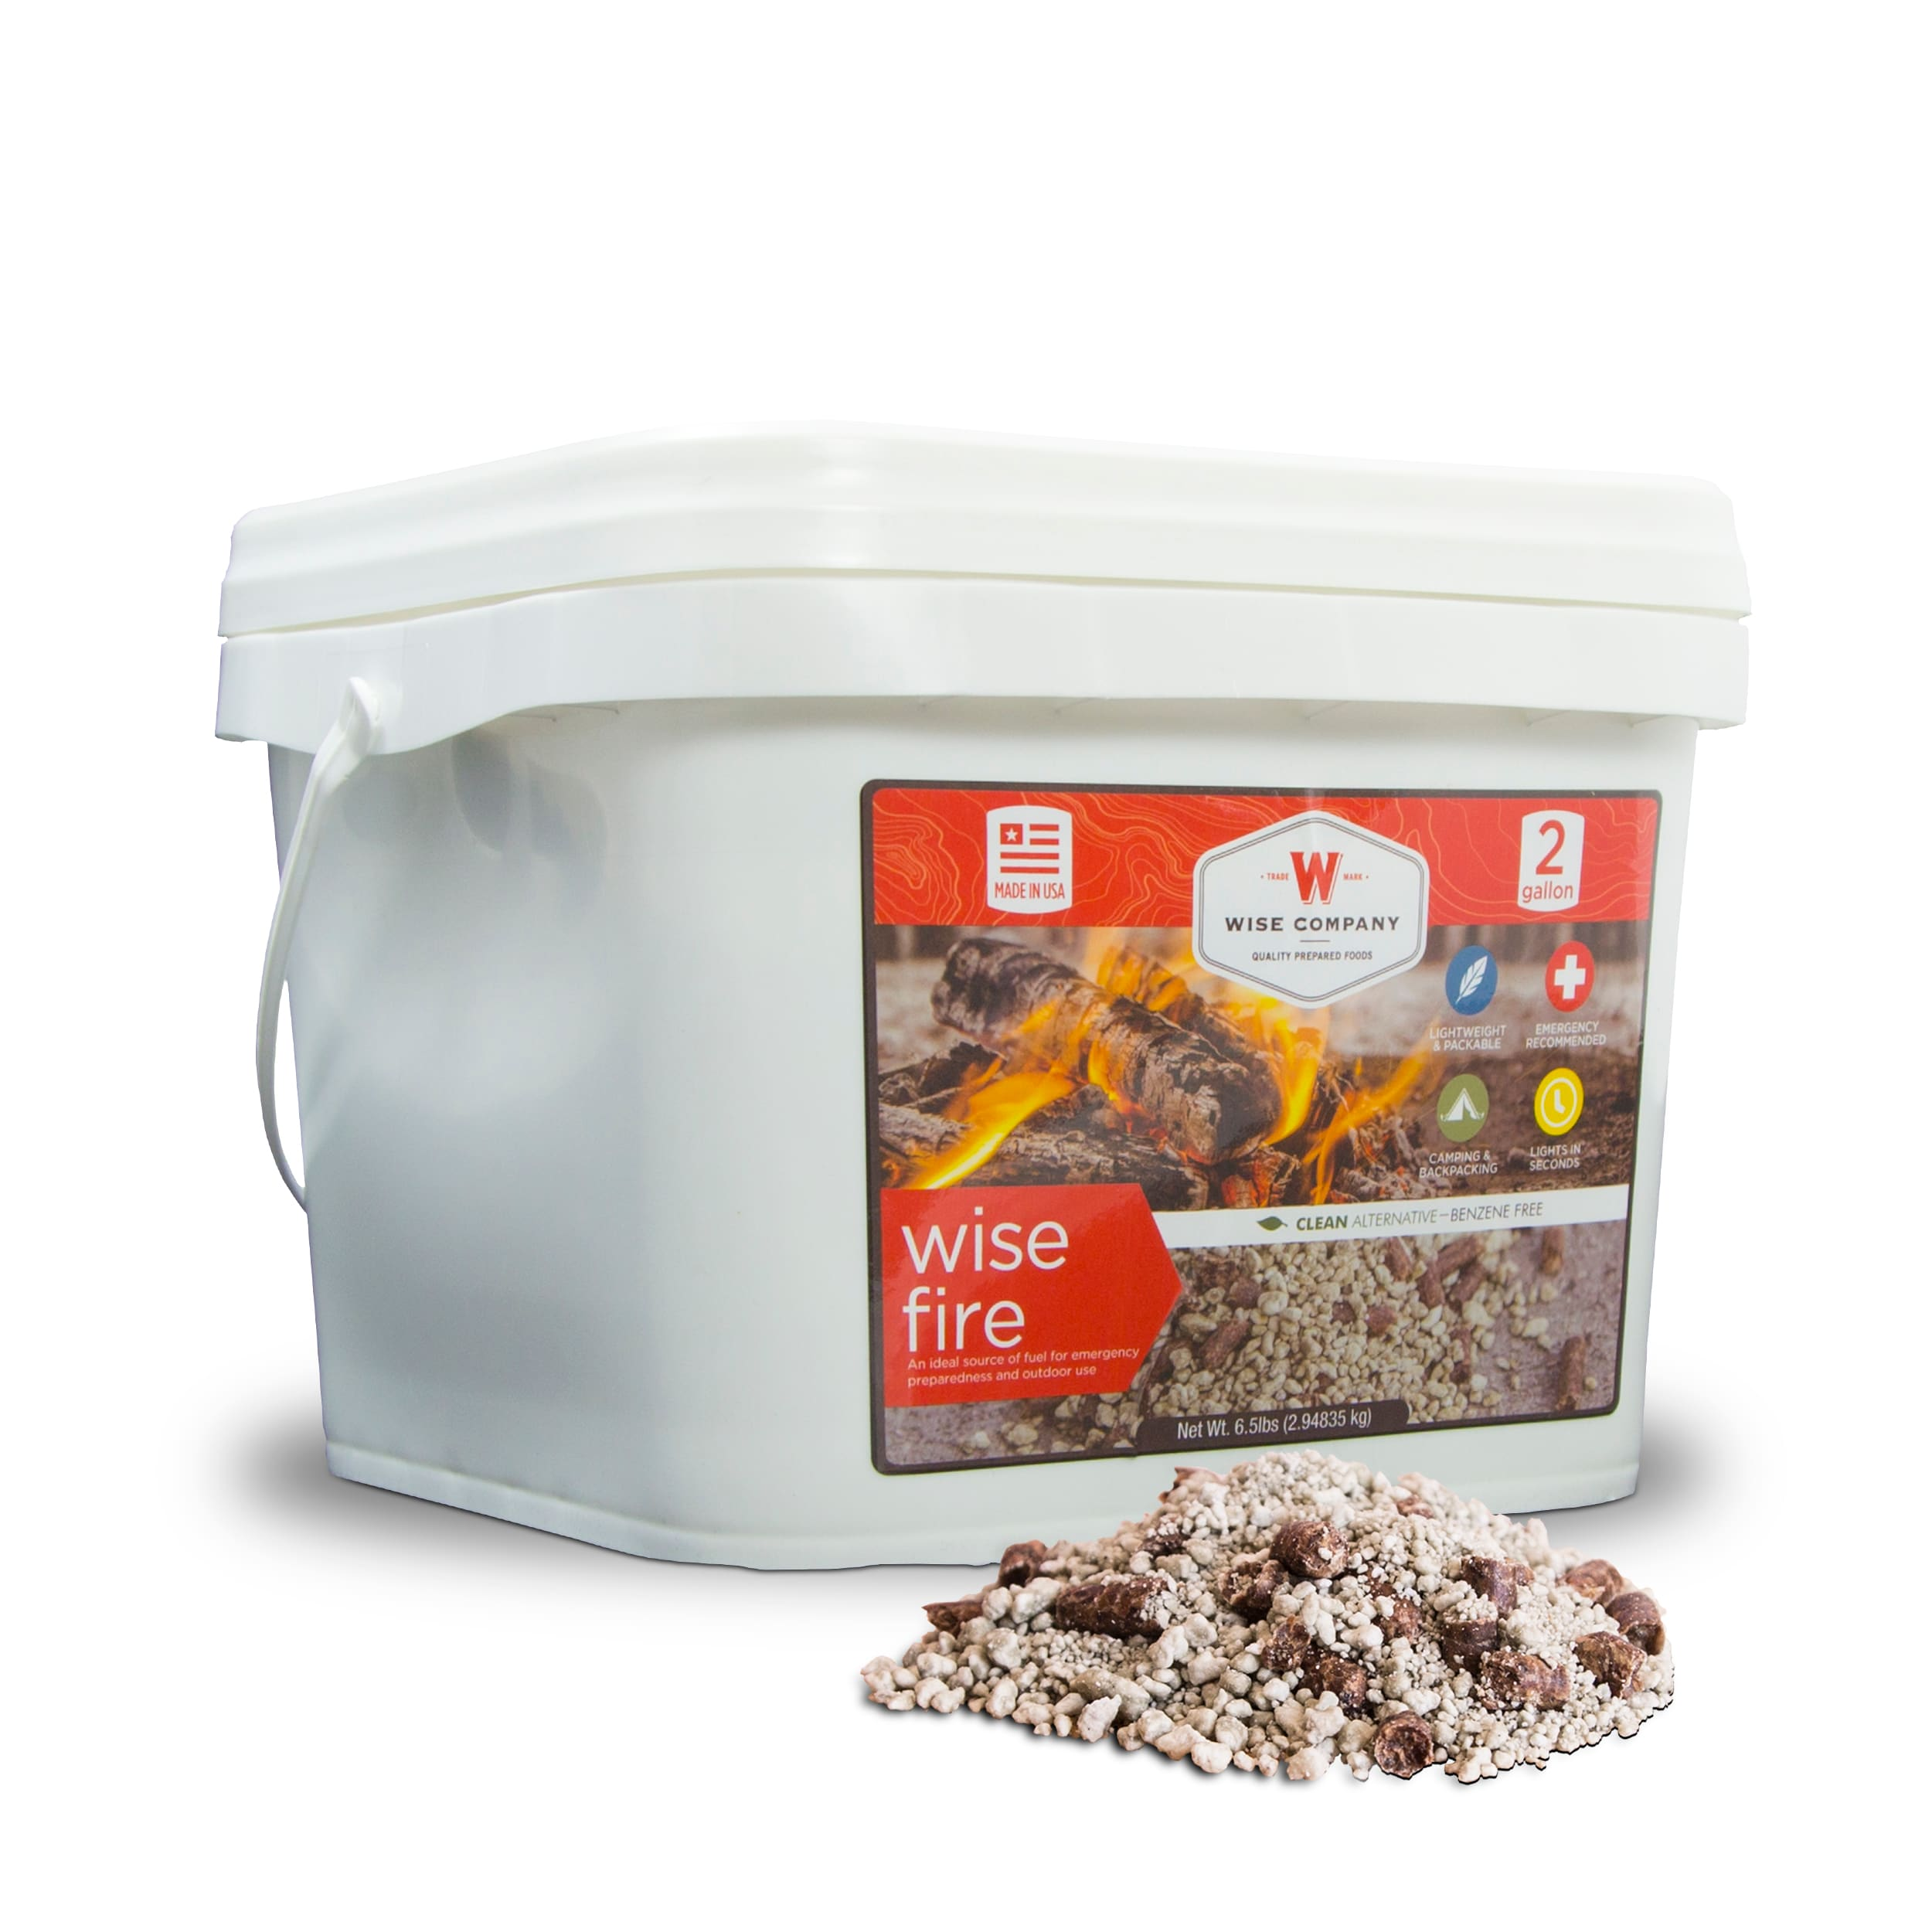 Wise Company WiseFire Starter (2 Gallons)